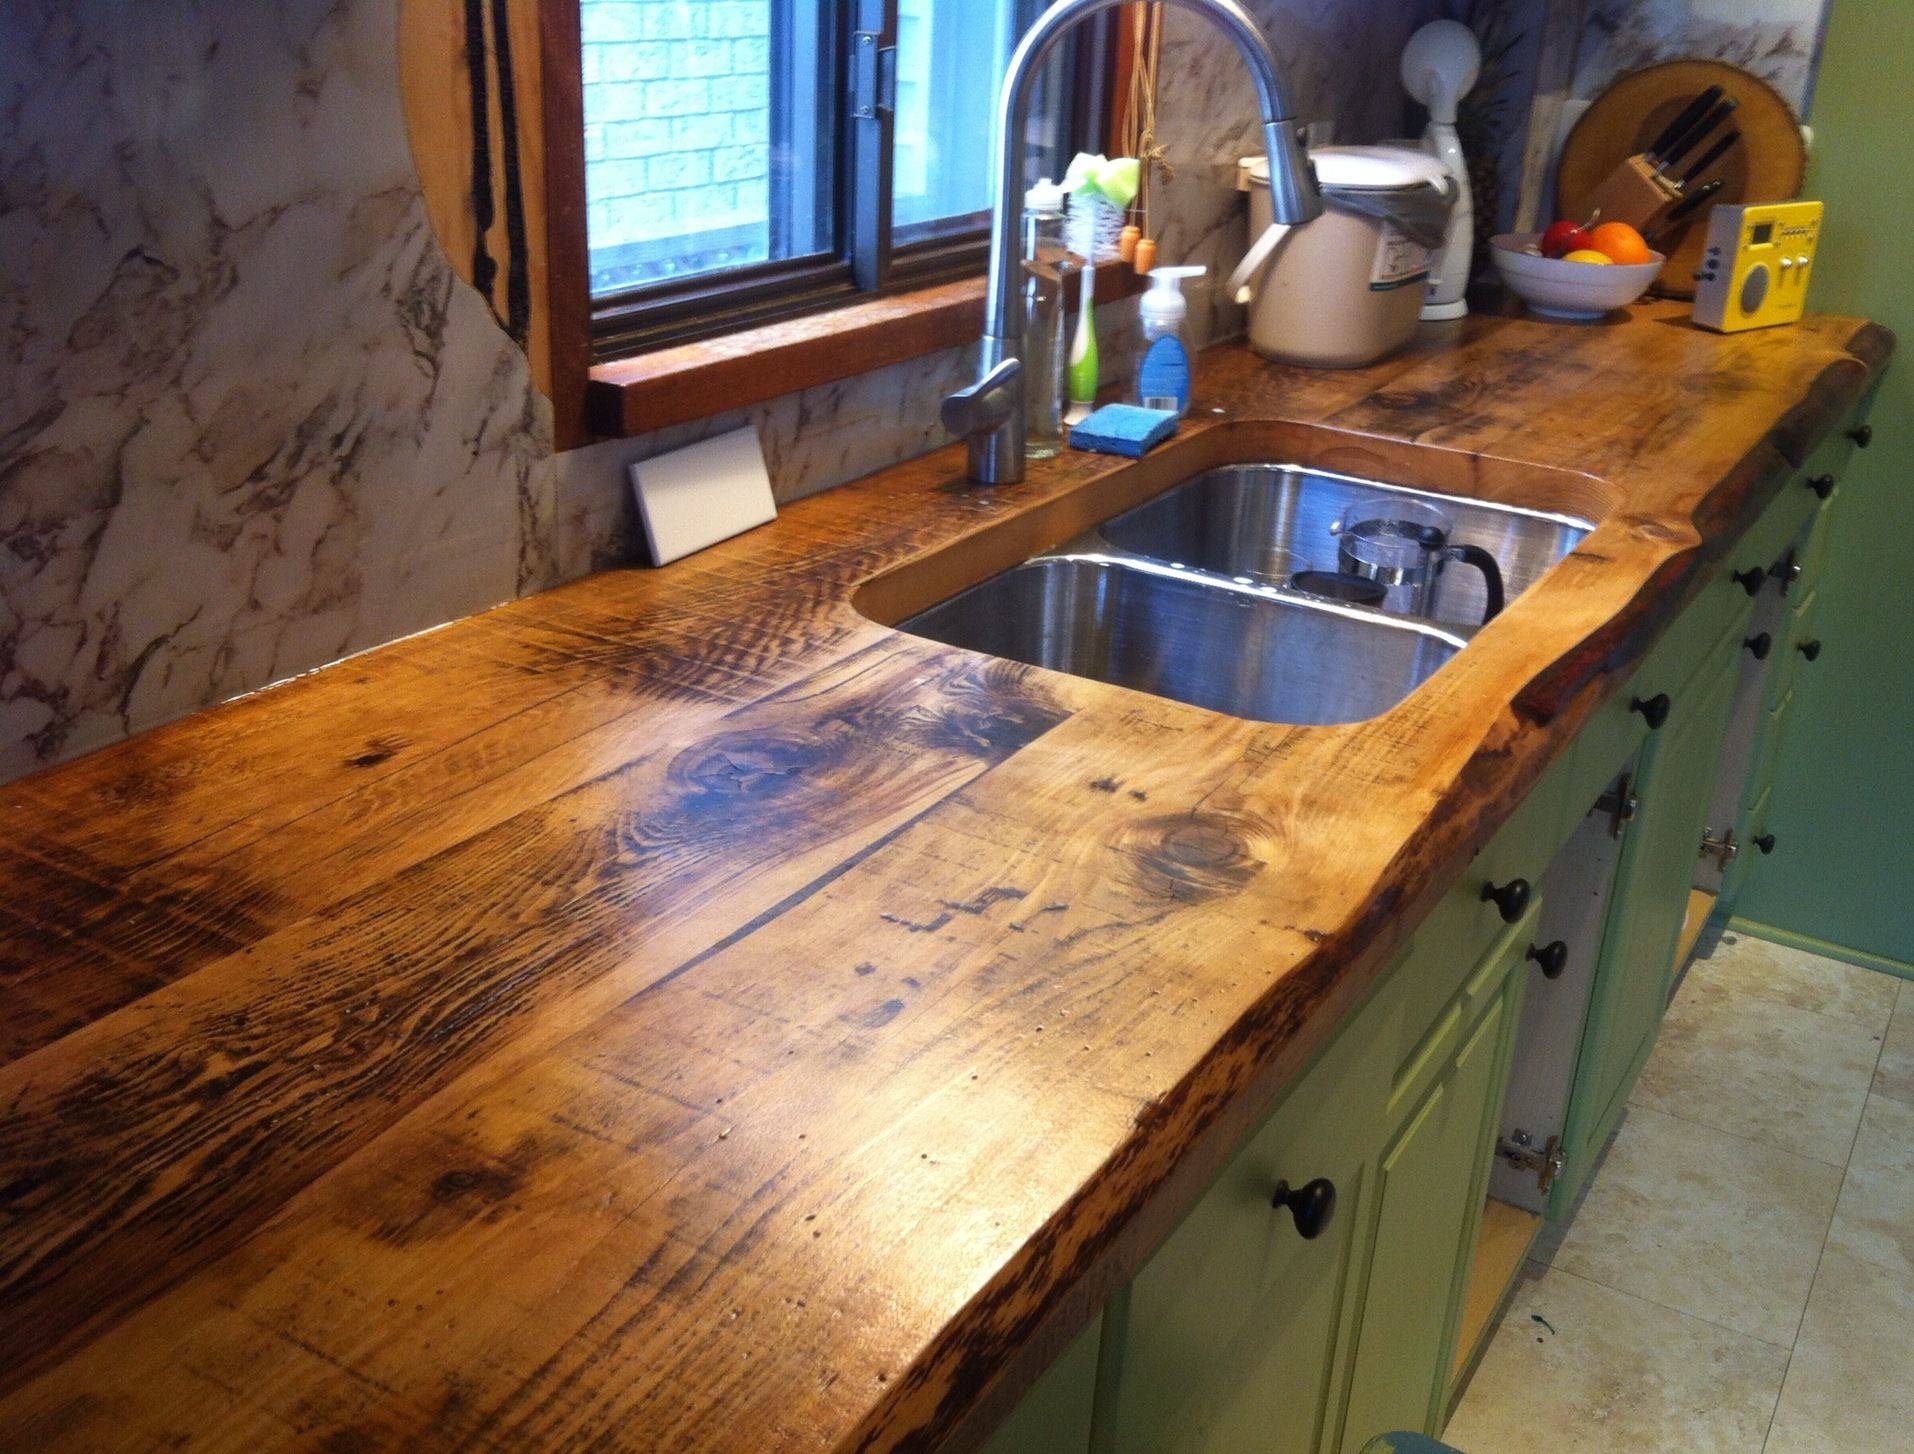 Awesome Live Edge Kitchen Counter Built With 2 Inch Thick Hemlock Floor Boards By Barnboard